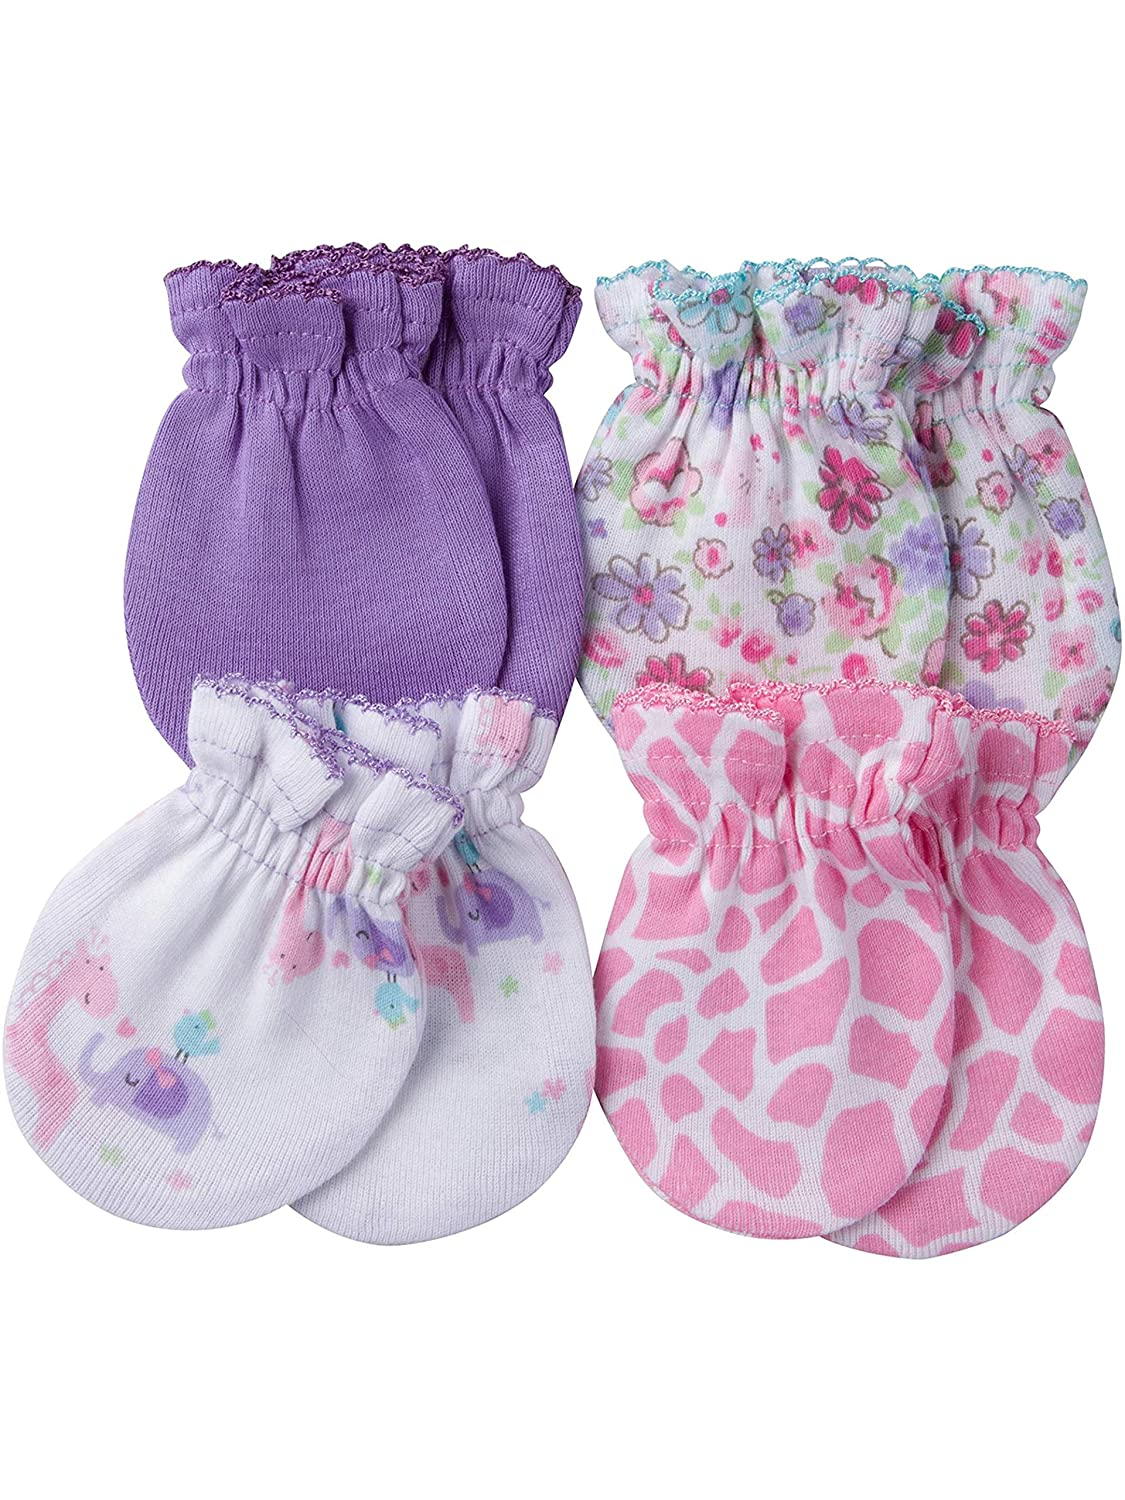 Gerber Newborn Baby Girl Assorted Mittens, 4-Pack